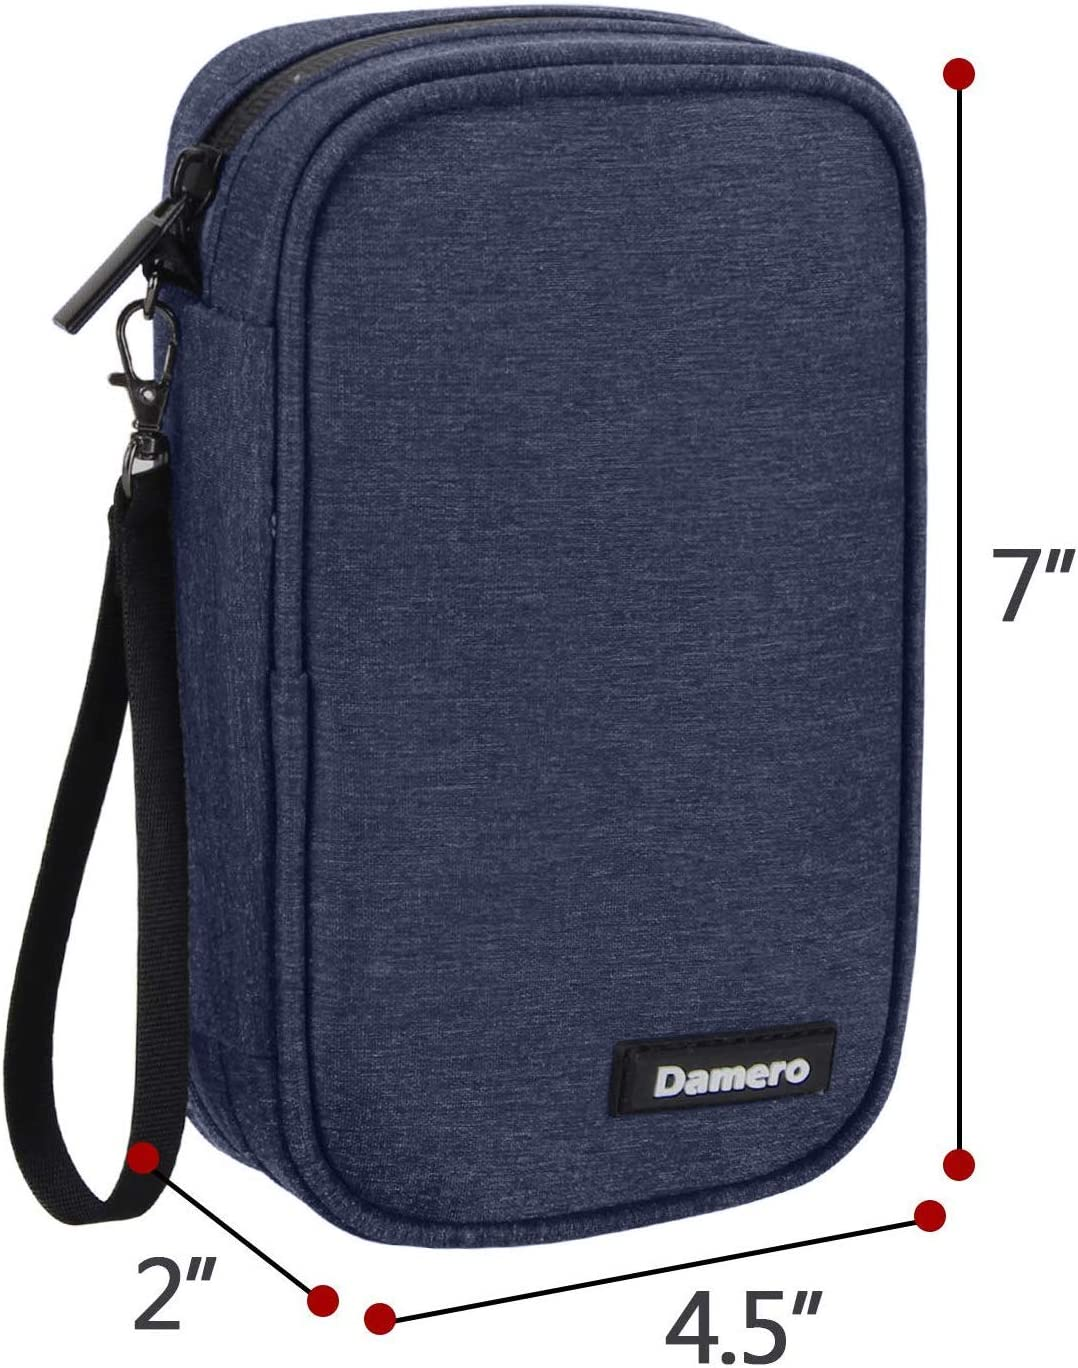 Damero USB Flash Drive Case Bag Wallet, SD Memory Cards Cable Organizer-Travel Gadget Case for Electronics Accessories (Small, Dark Blue)